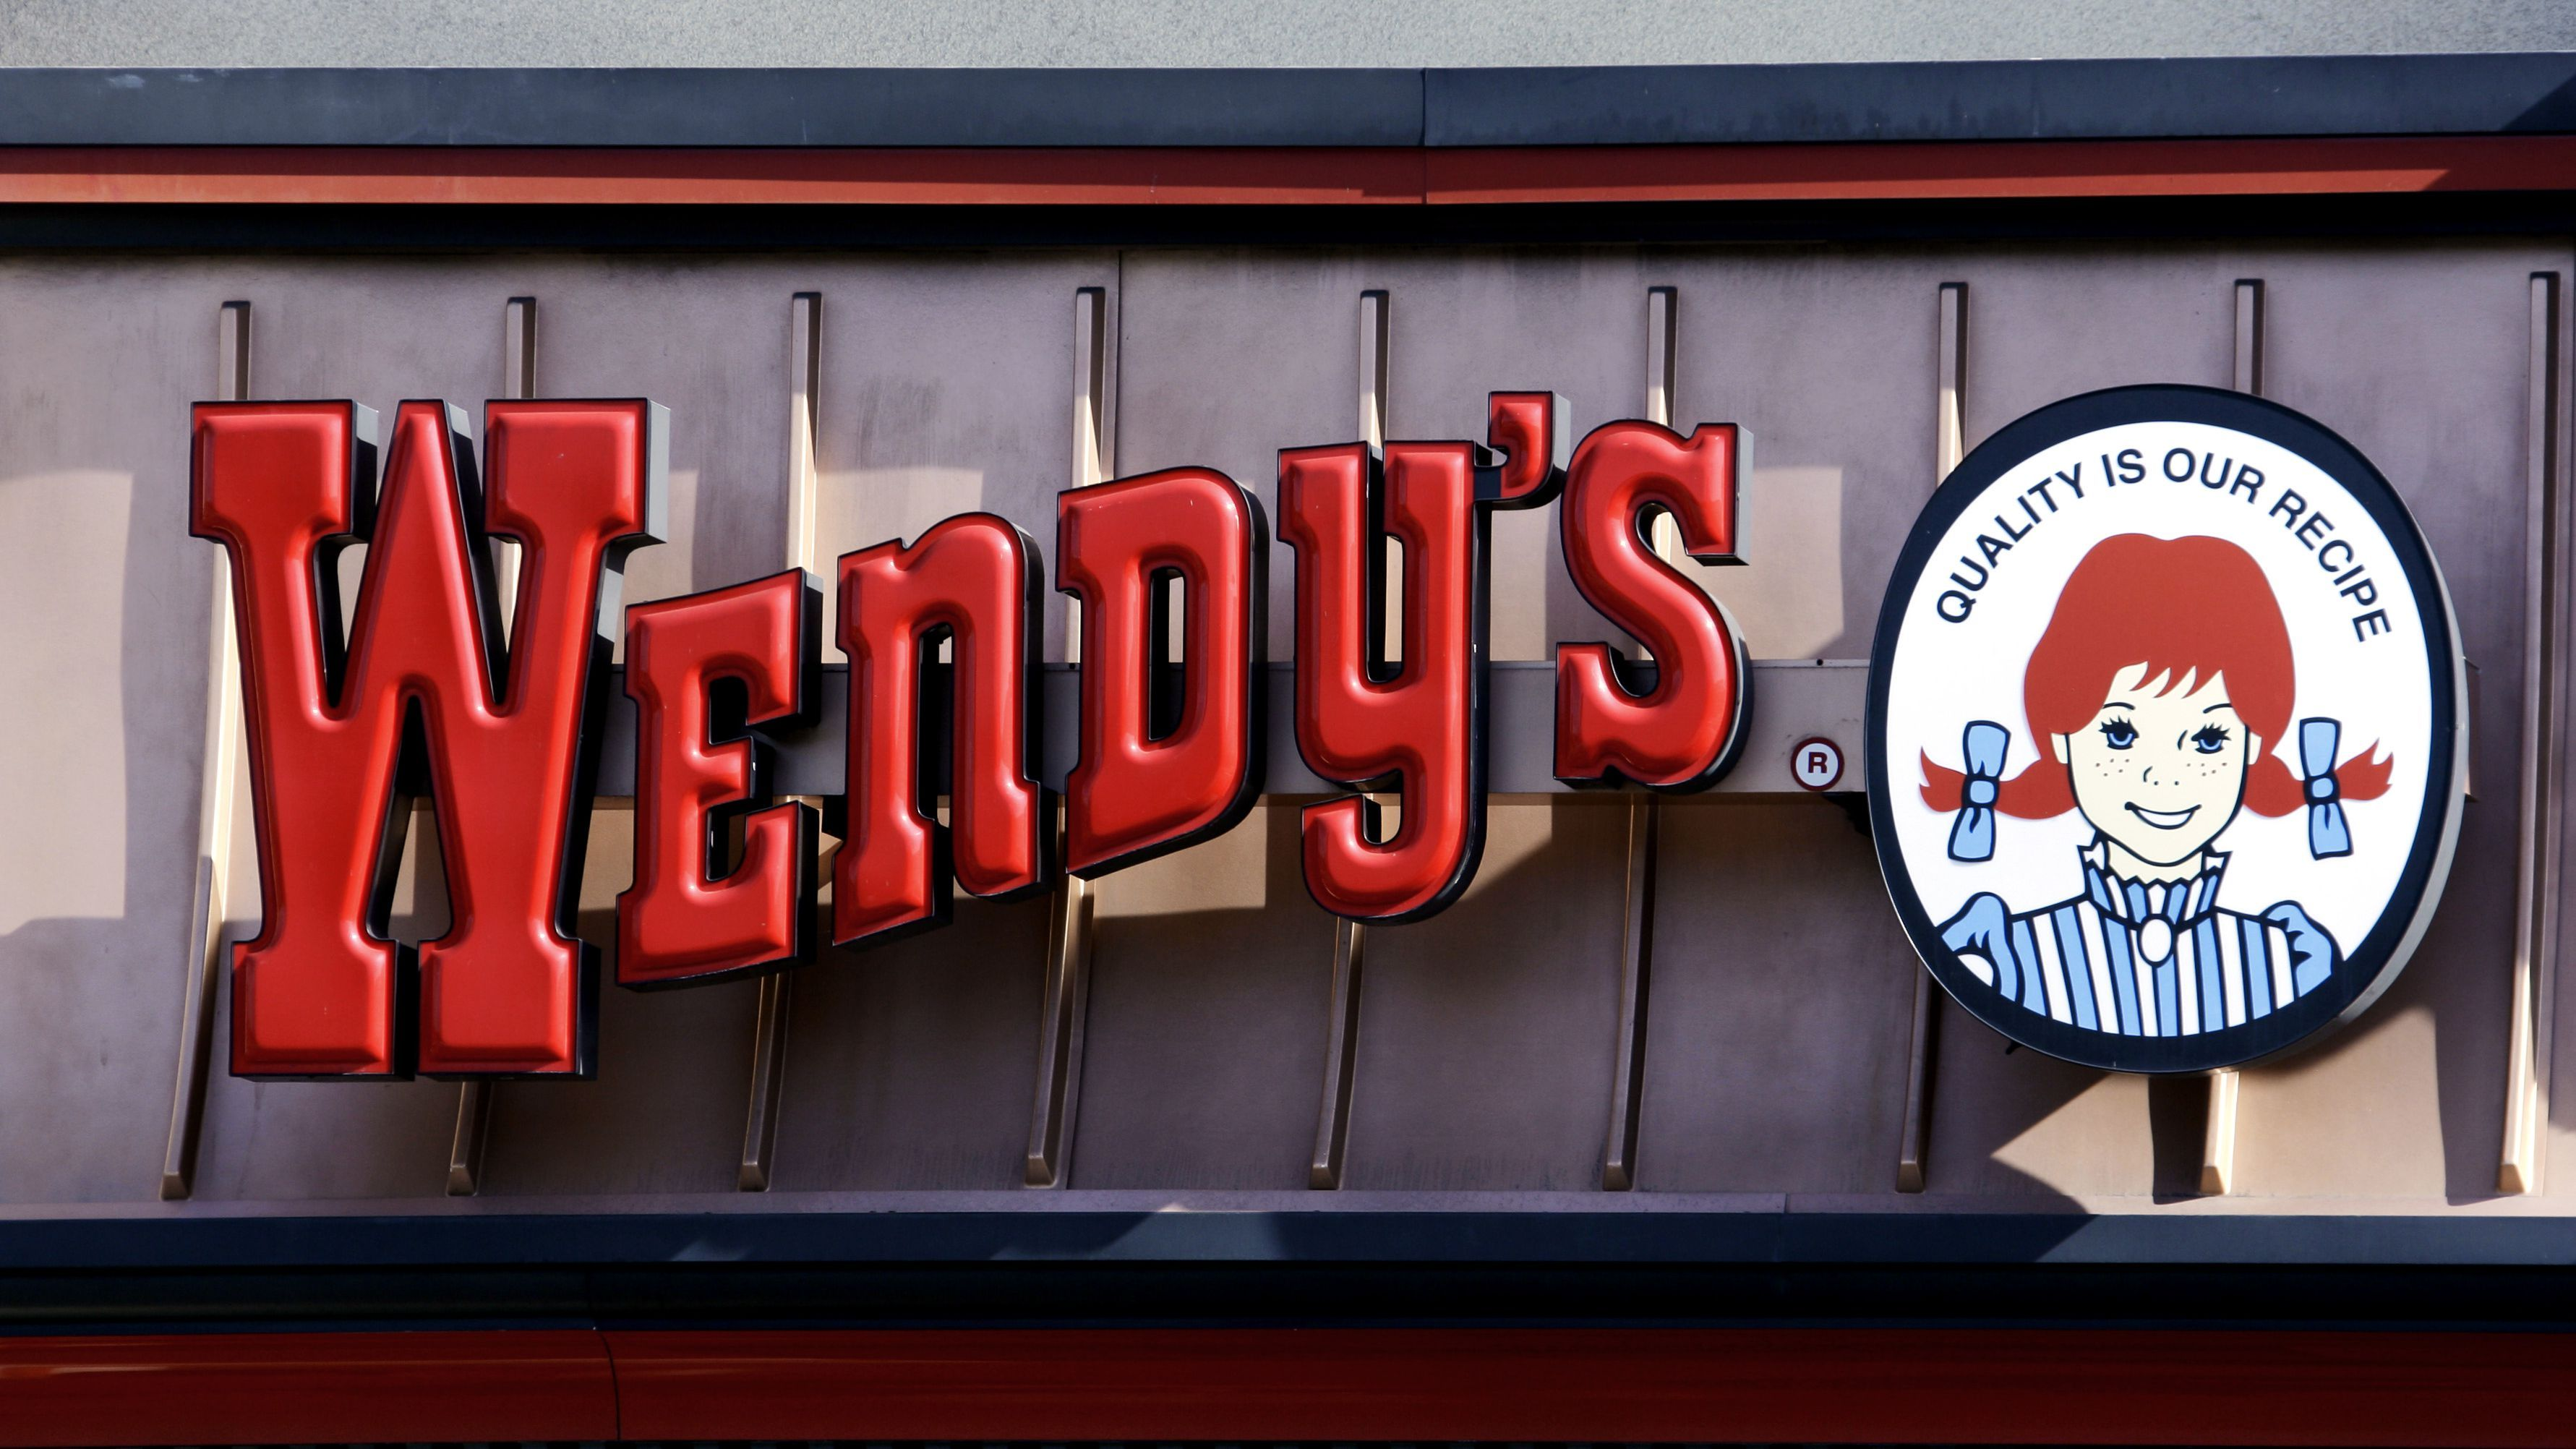 Facing Higher Wages, Wendy's Exploring Automation Options To Cut Costs